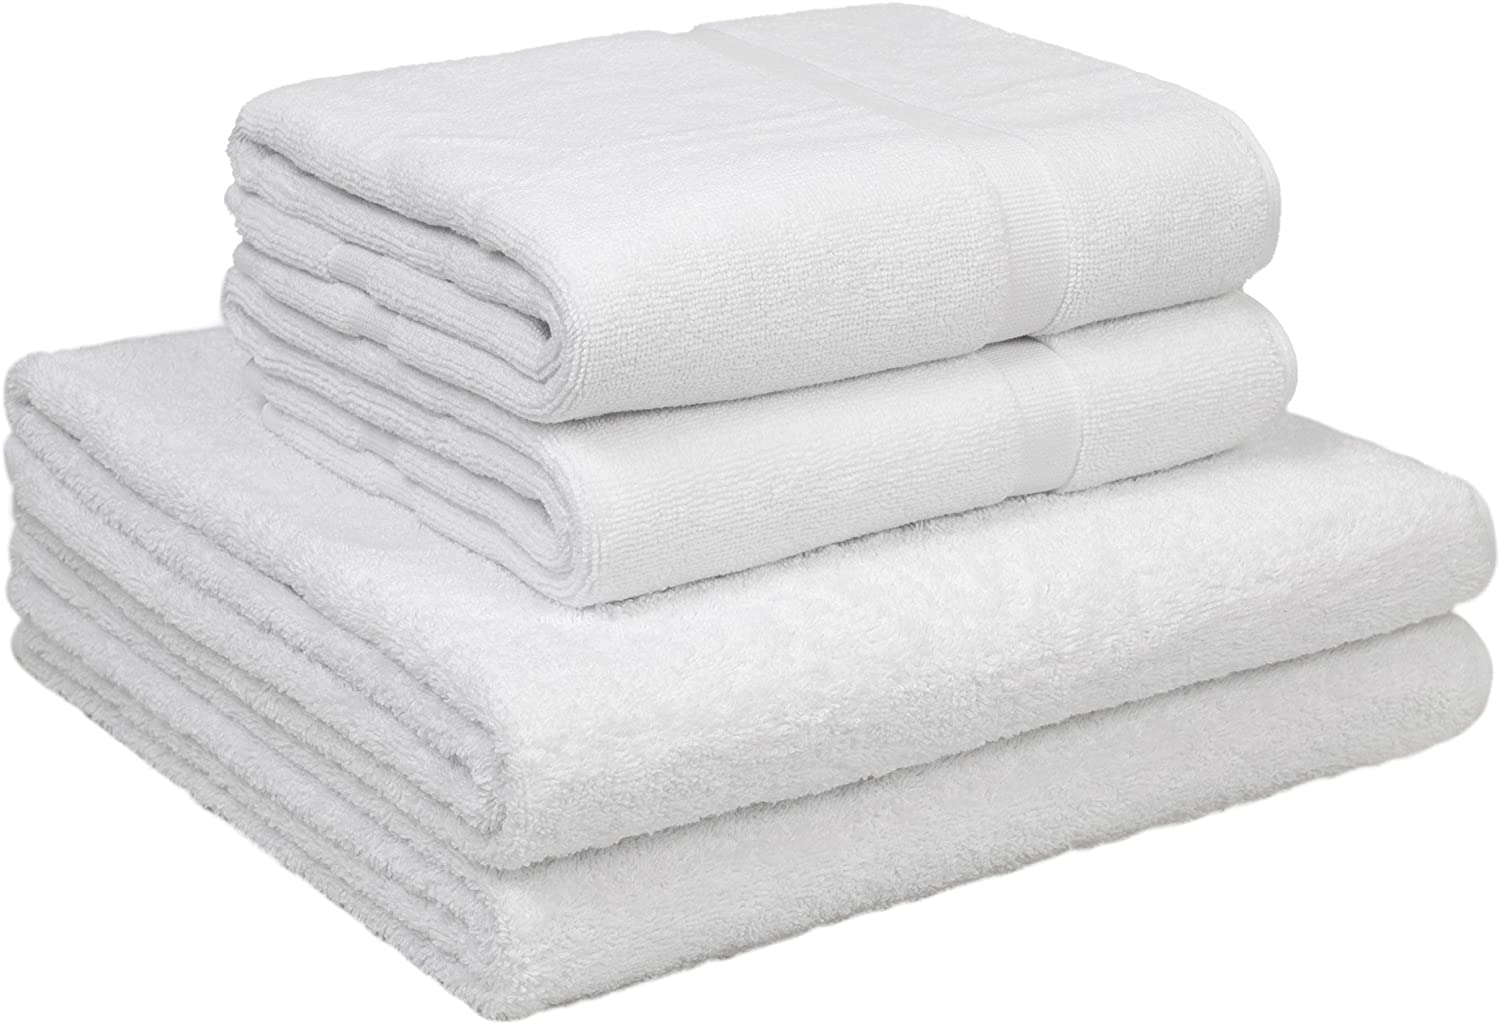 Oversized Bath Towels 30x60 Home and Plan Quick Dry Premium 100/% Turkish Cotton Bath Sheets 2-Piece Set S1 - Aqua